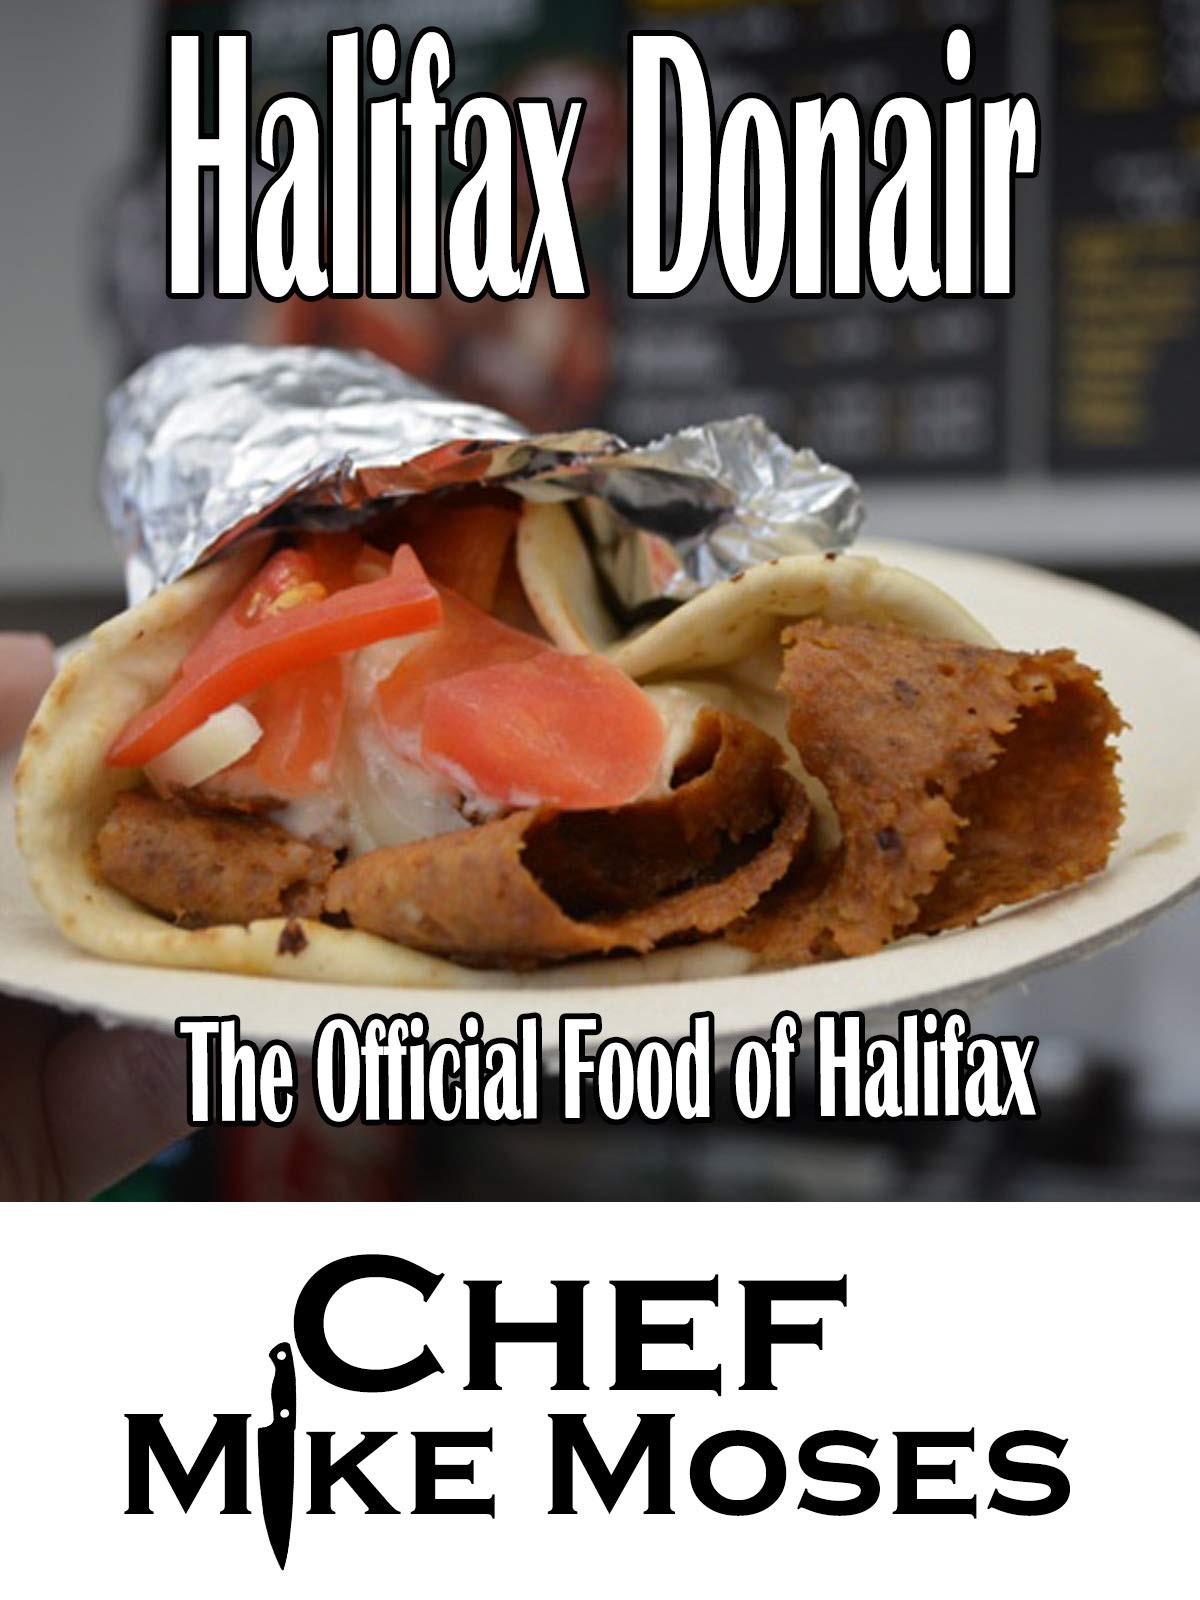 Halifax Donair - The Official Food of Halifax